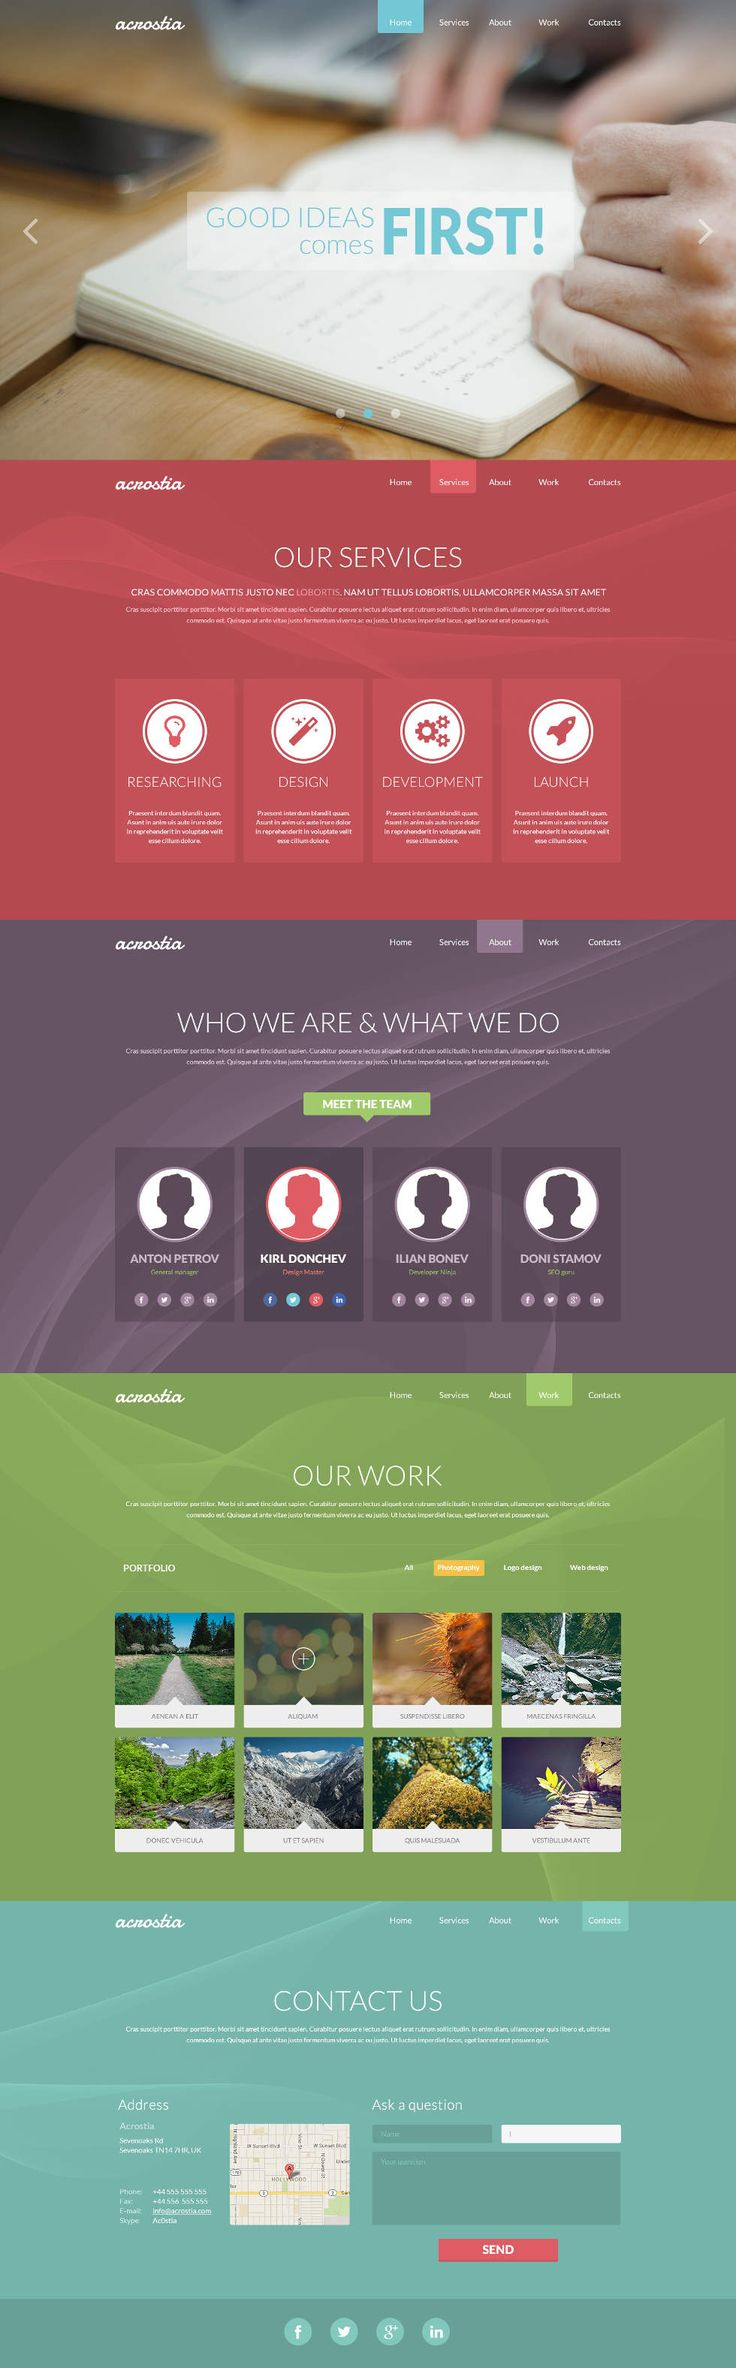 best ideas about web design website website 17 best ideas about web design website website layout and ui design